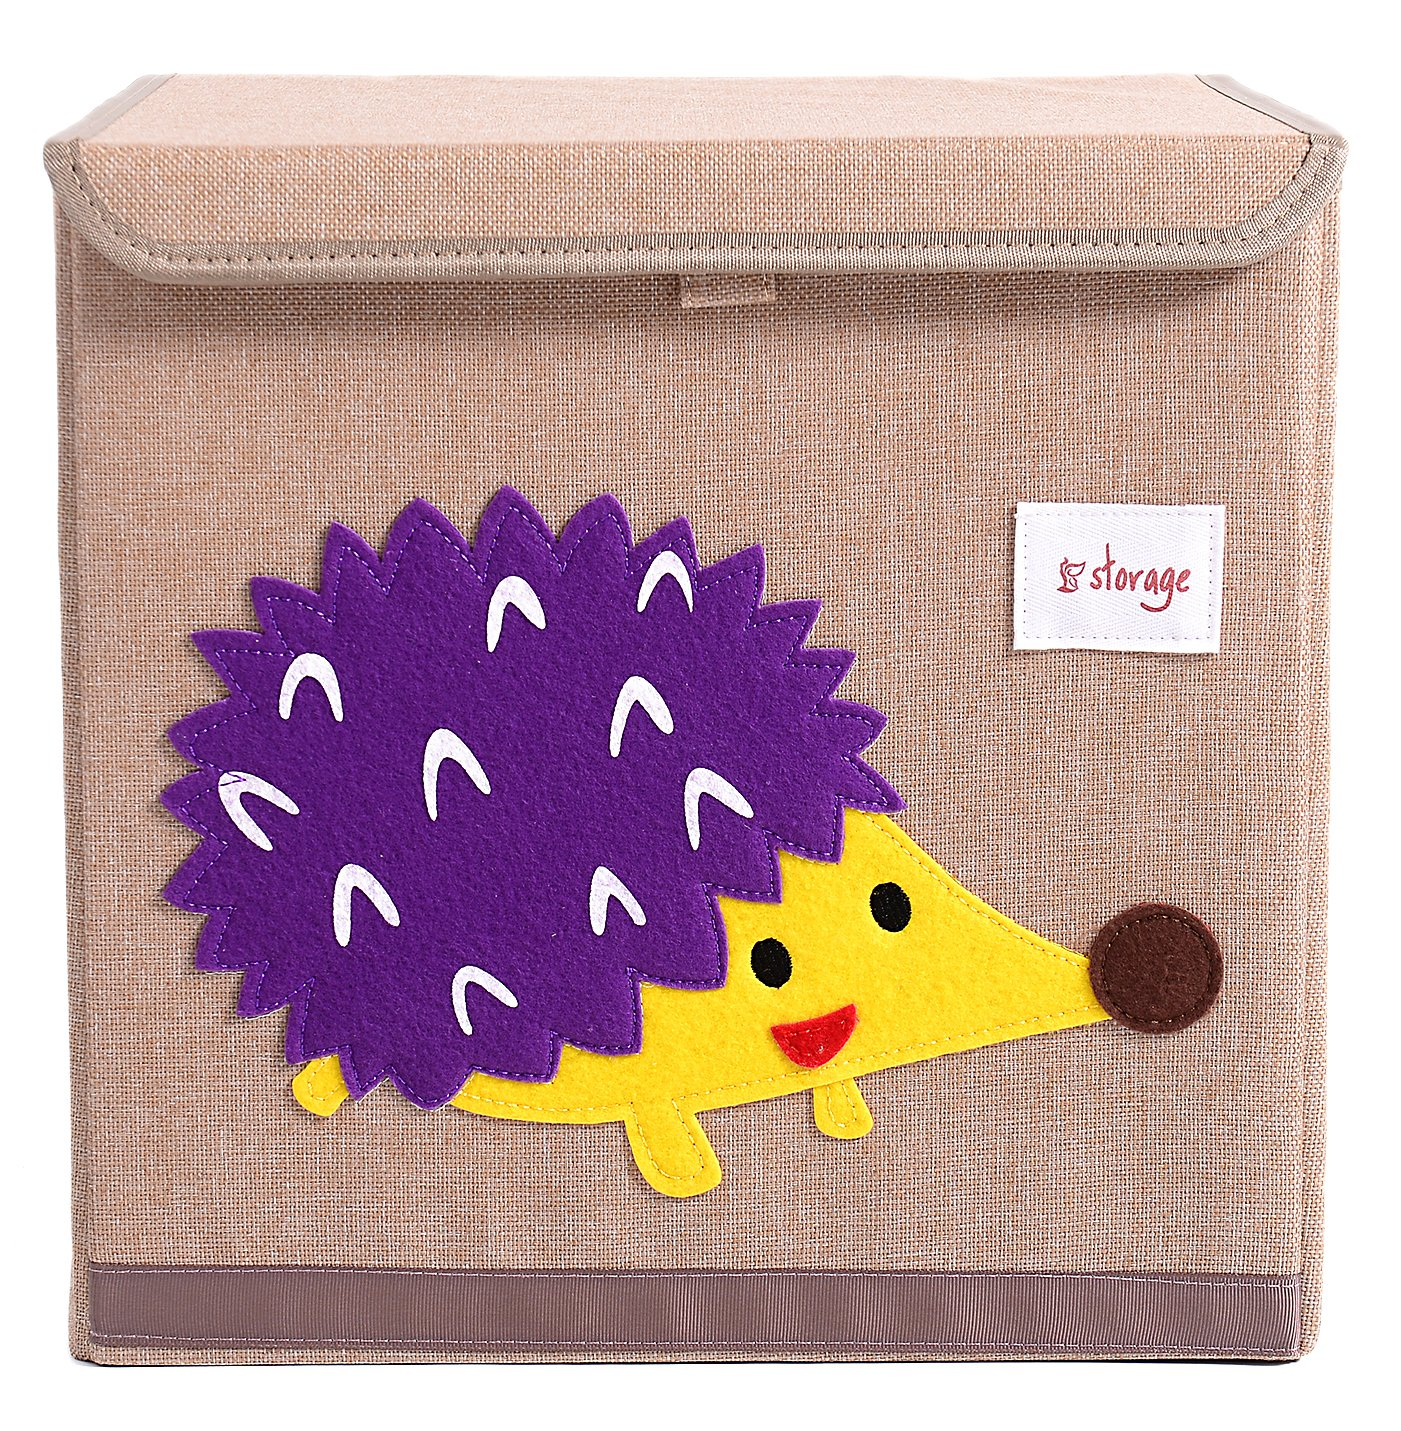 HIYAGON 13''x13''x13''Storage Box/Bin/Cube/Basket/Chest/Organizers with Lids for Bedroom, Nursery, Playroom, Toys, Clothing, Blankets, Books, More(Hedgehog) by HIYAGON (Image #1)